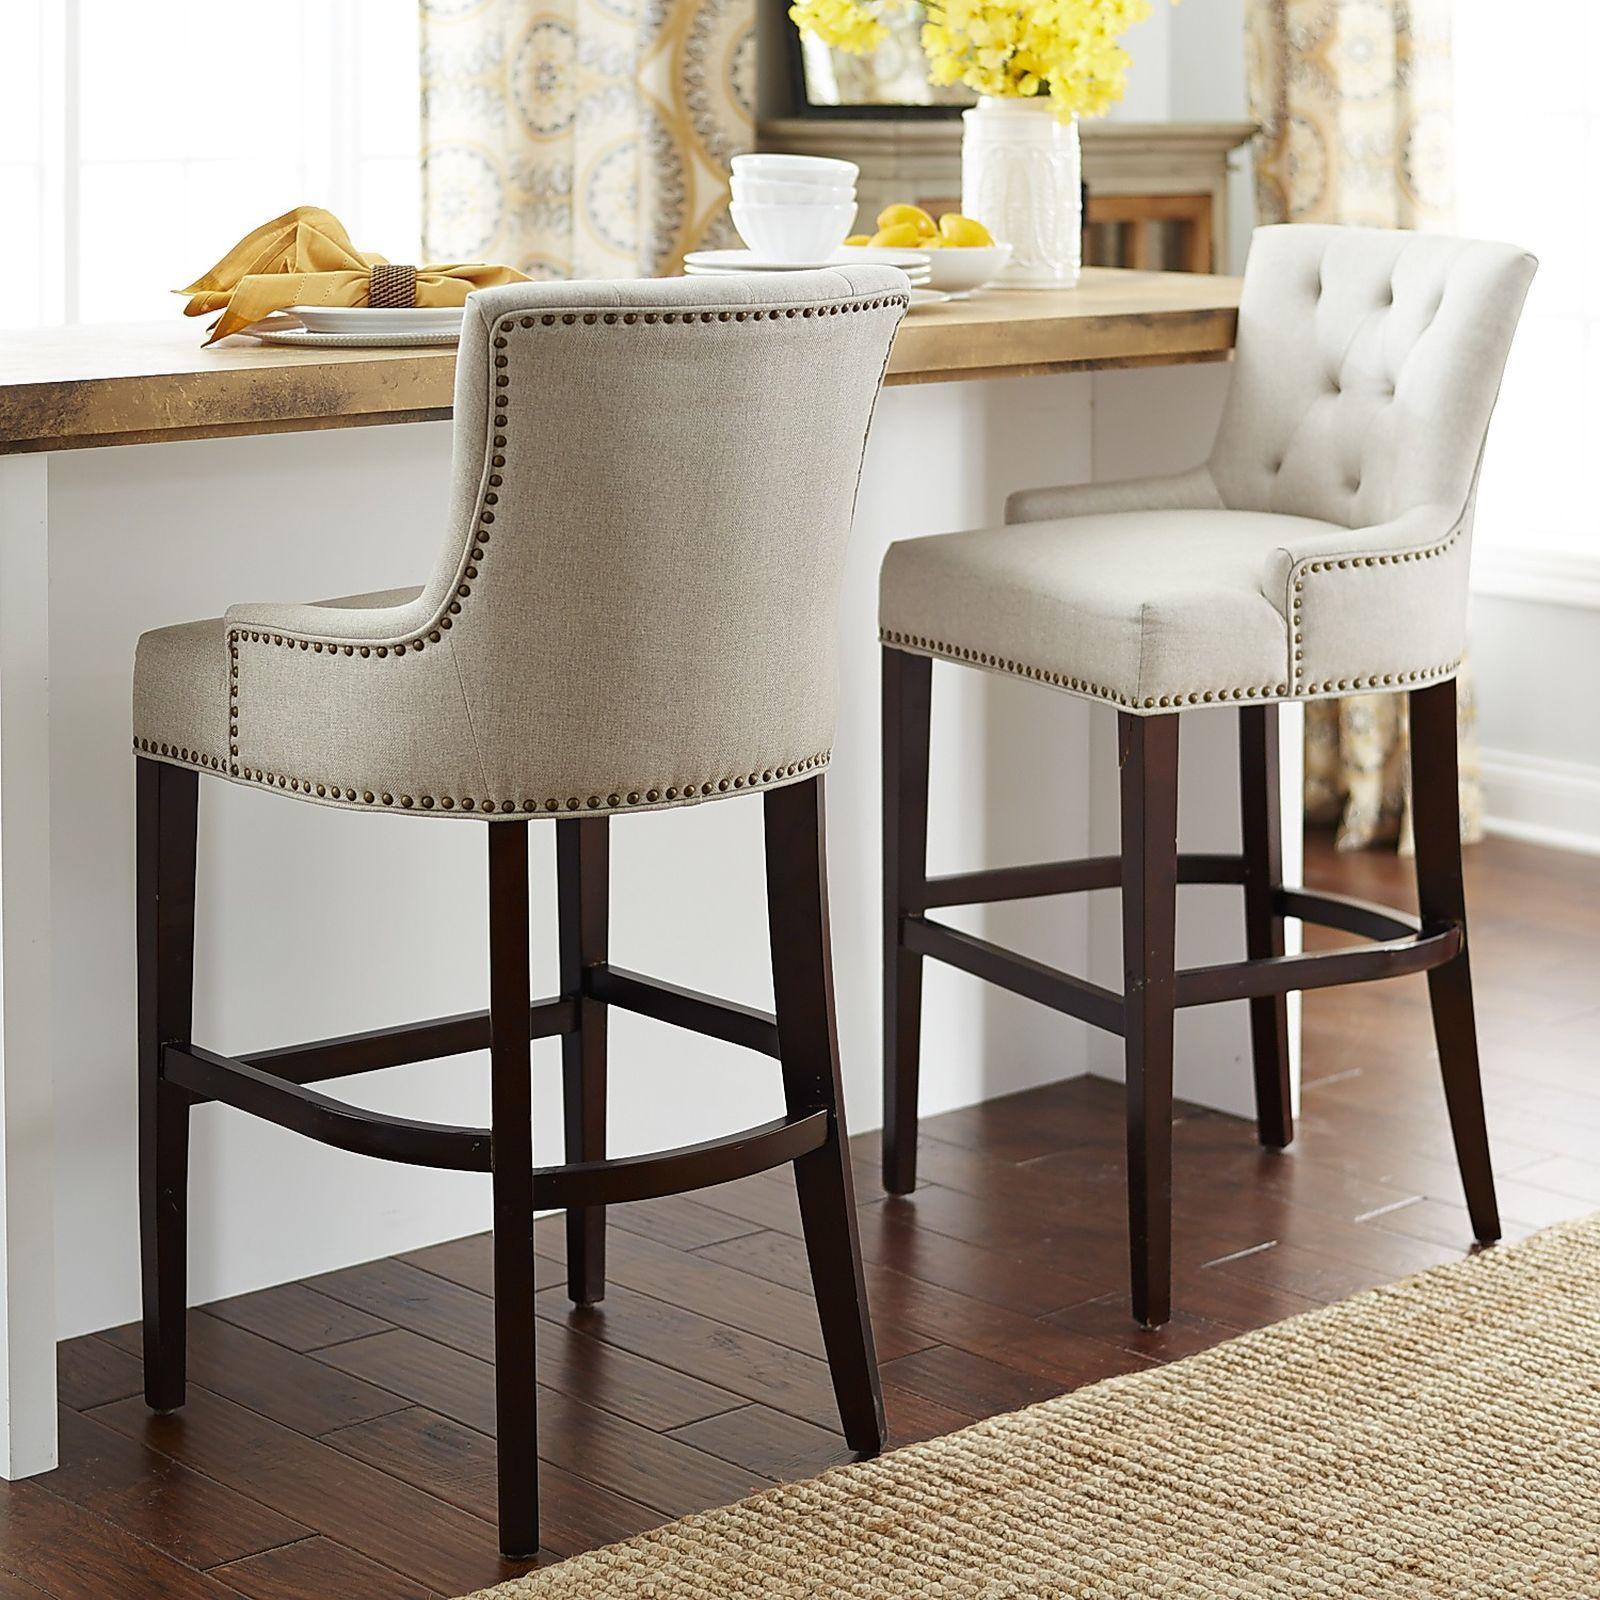 Ava Flax Counter Bar Stool In 2020